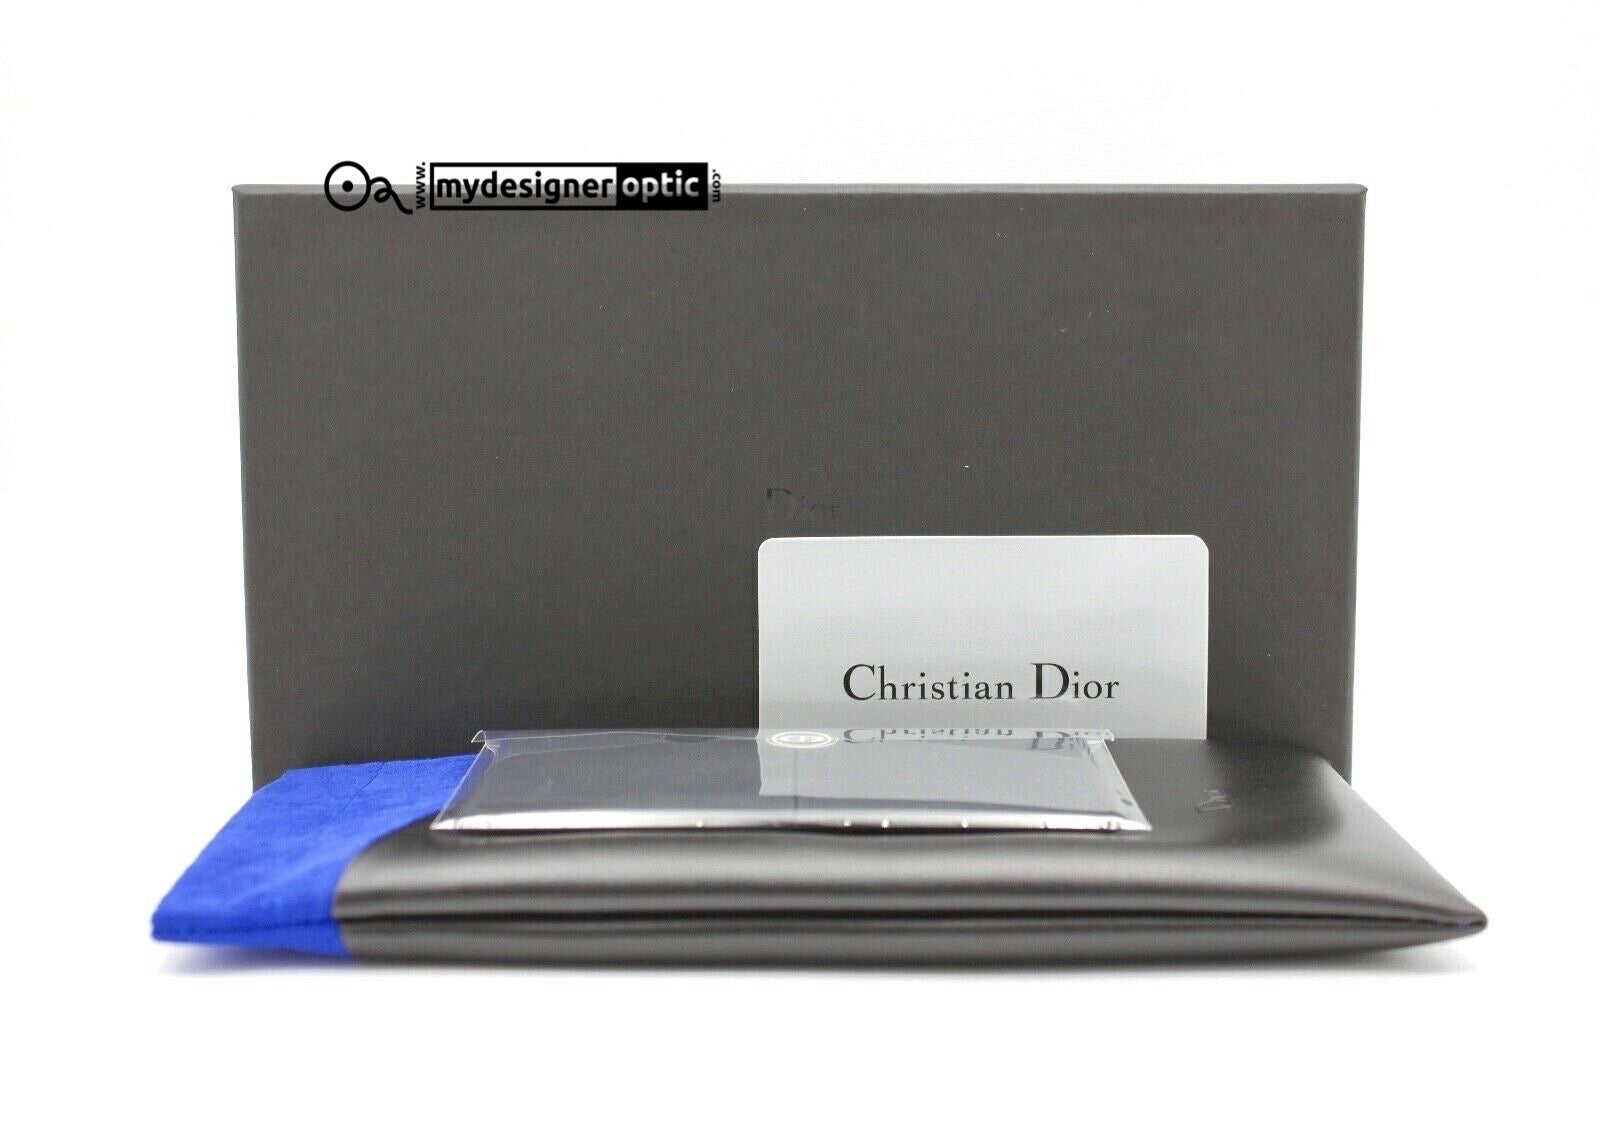 Christian Dior DiorSight1 REPBN 54-20-145 Made in Italy HM3 (DEAD STOCK) - Mydesigneroptic